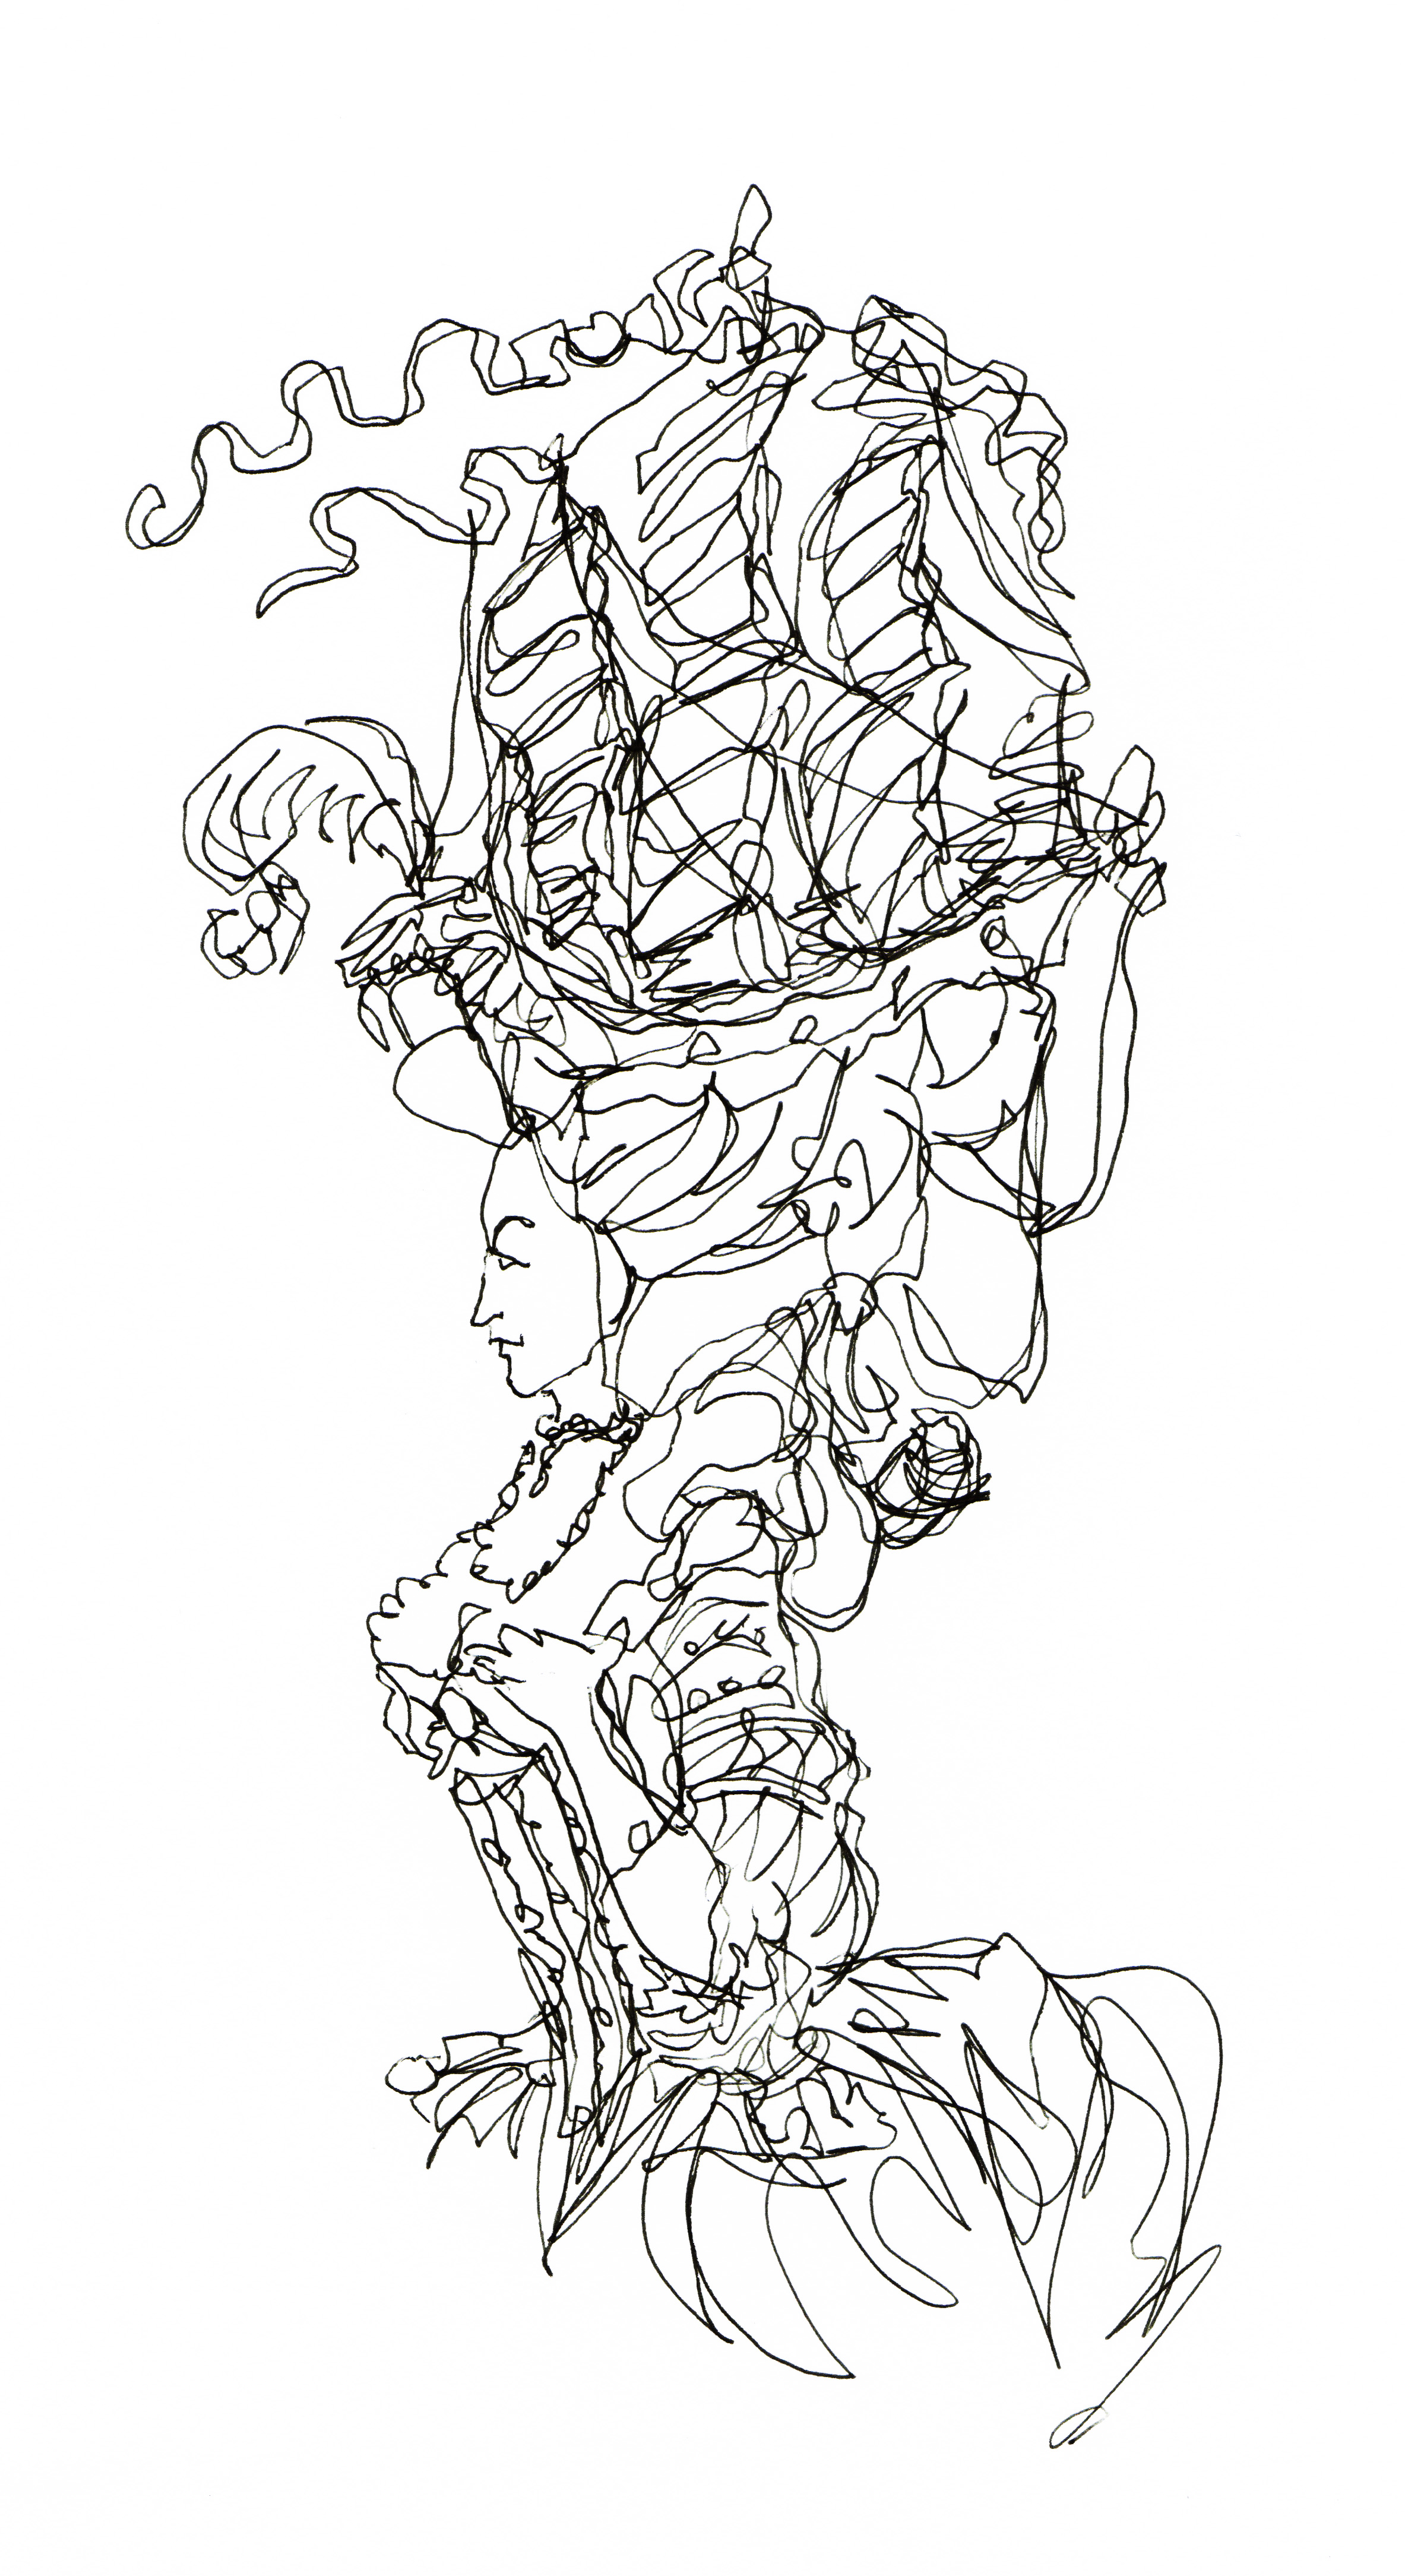 6_Image_Single Continuous Line_Marie_Antoinette_©TamarLevi 115.jpg